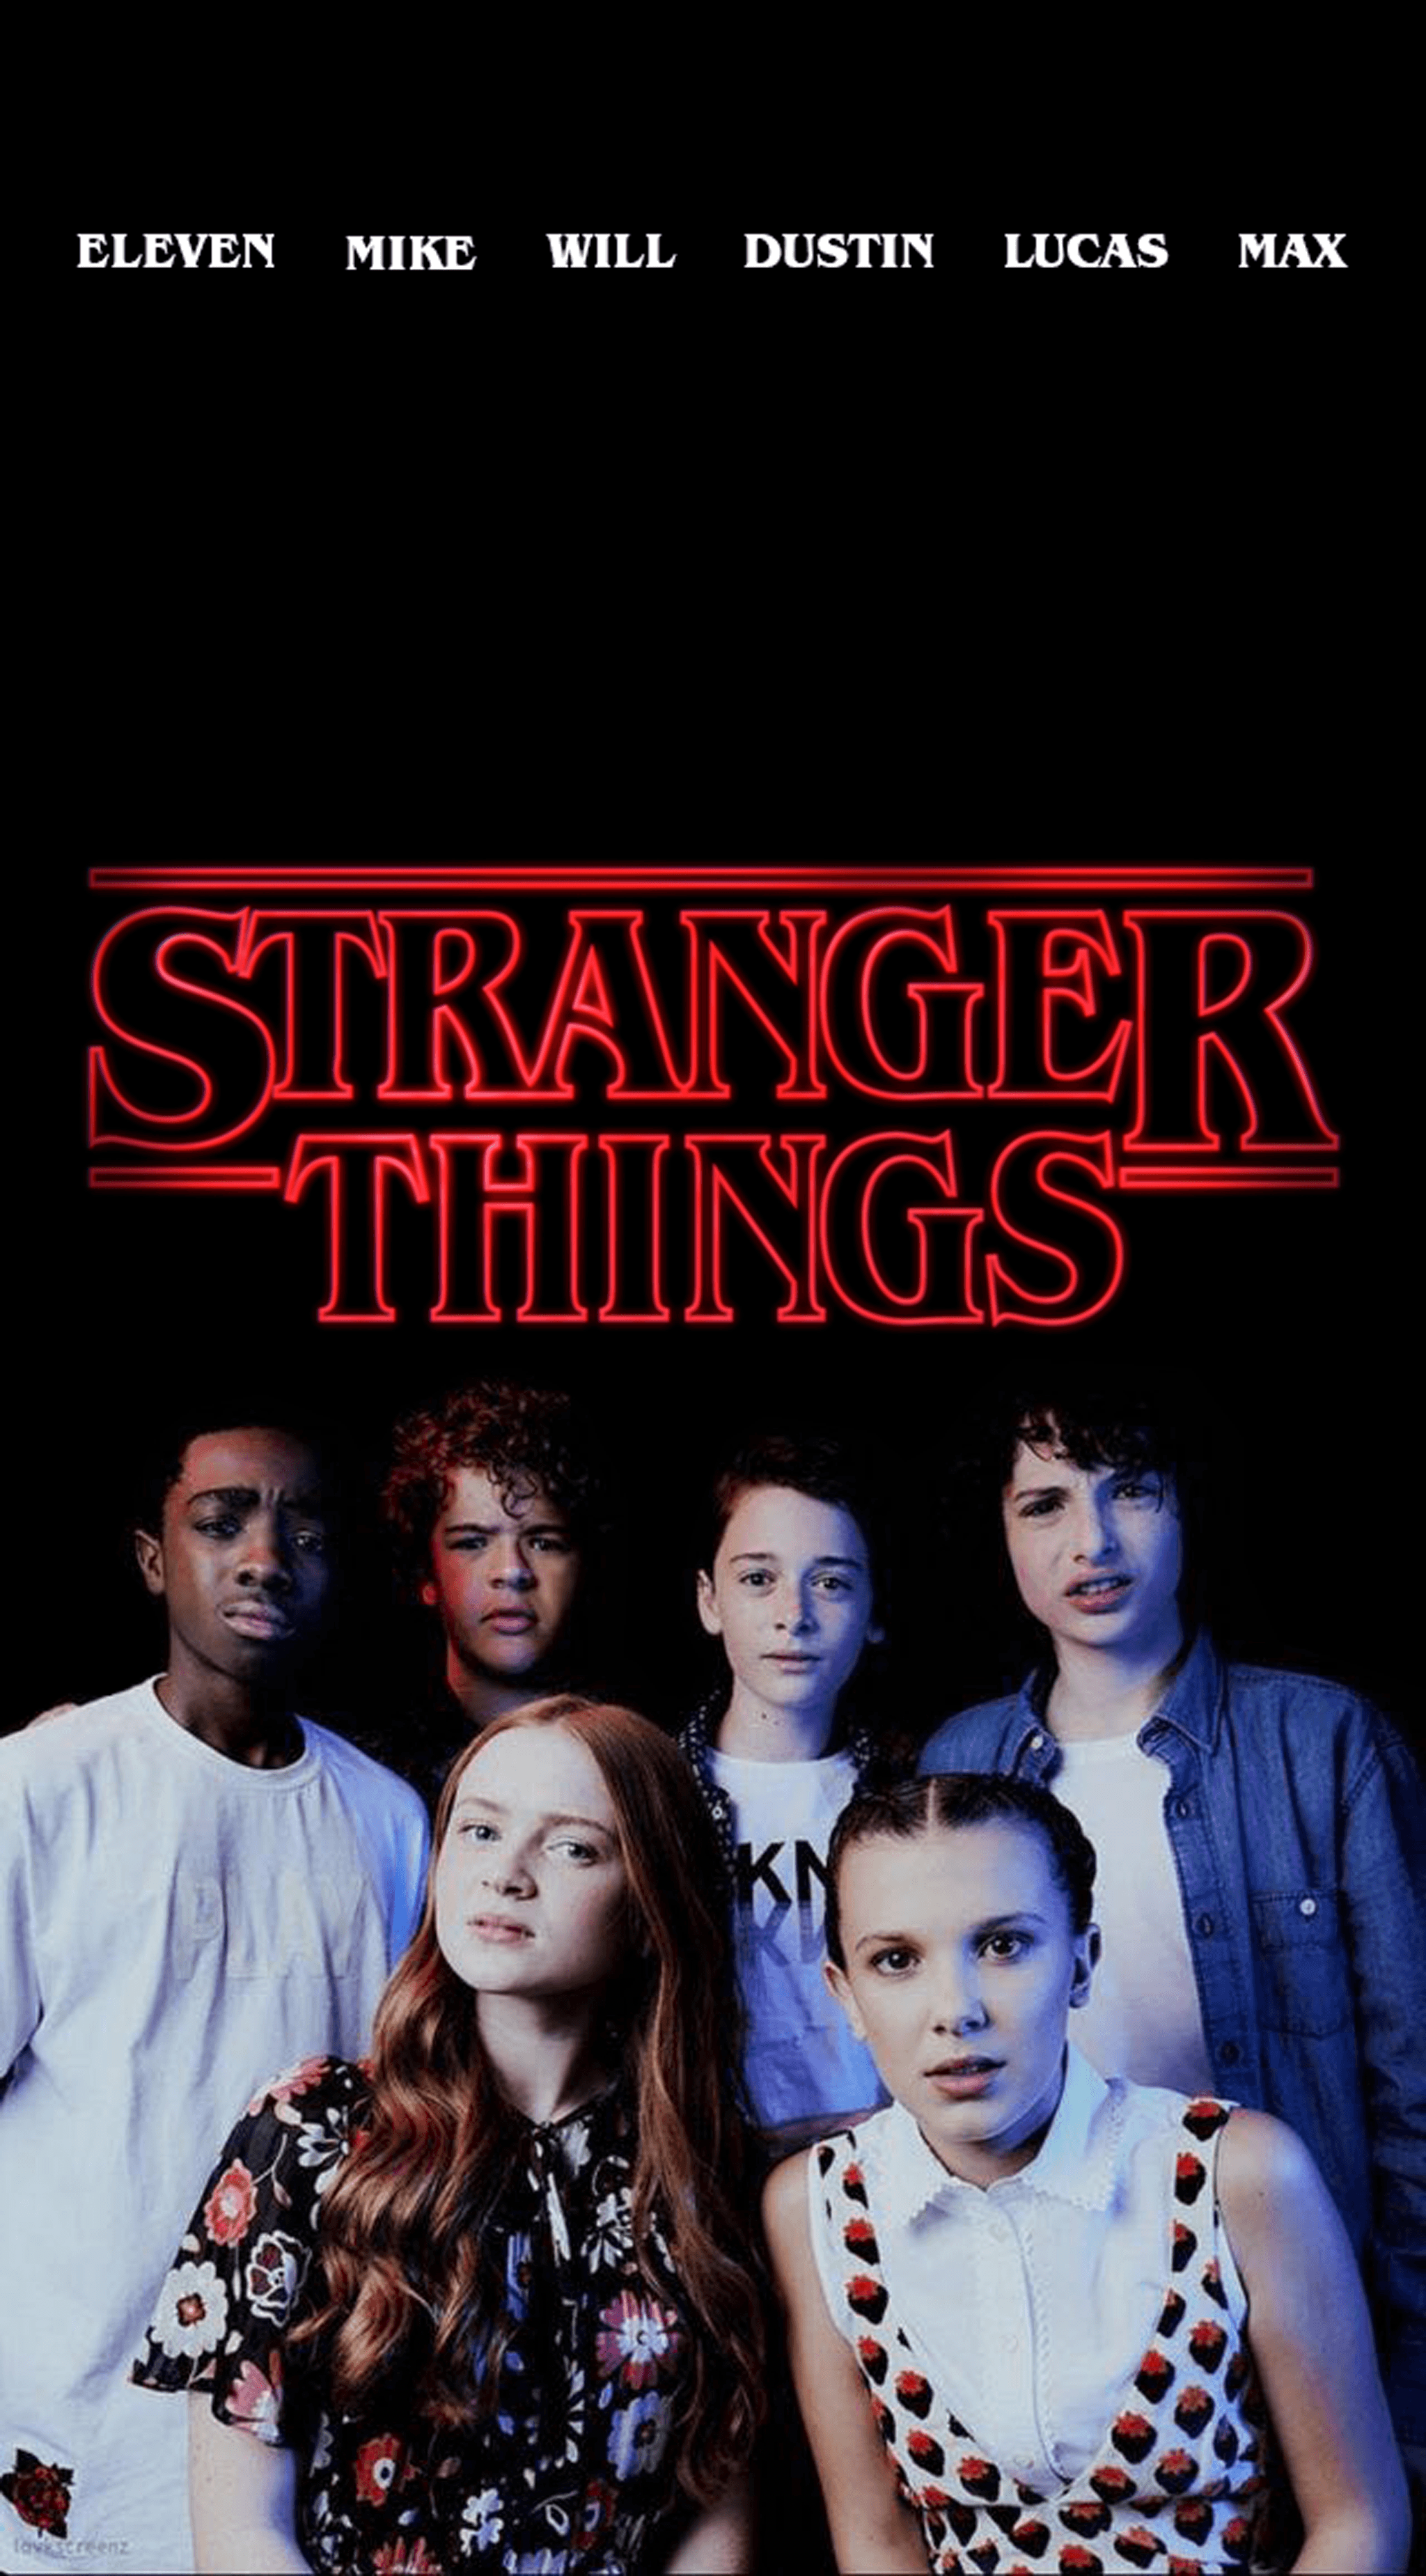 Stranger Things Eleven And Mike Wallpapers Wallpaper Cave